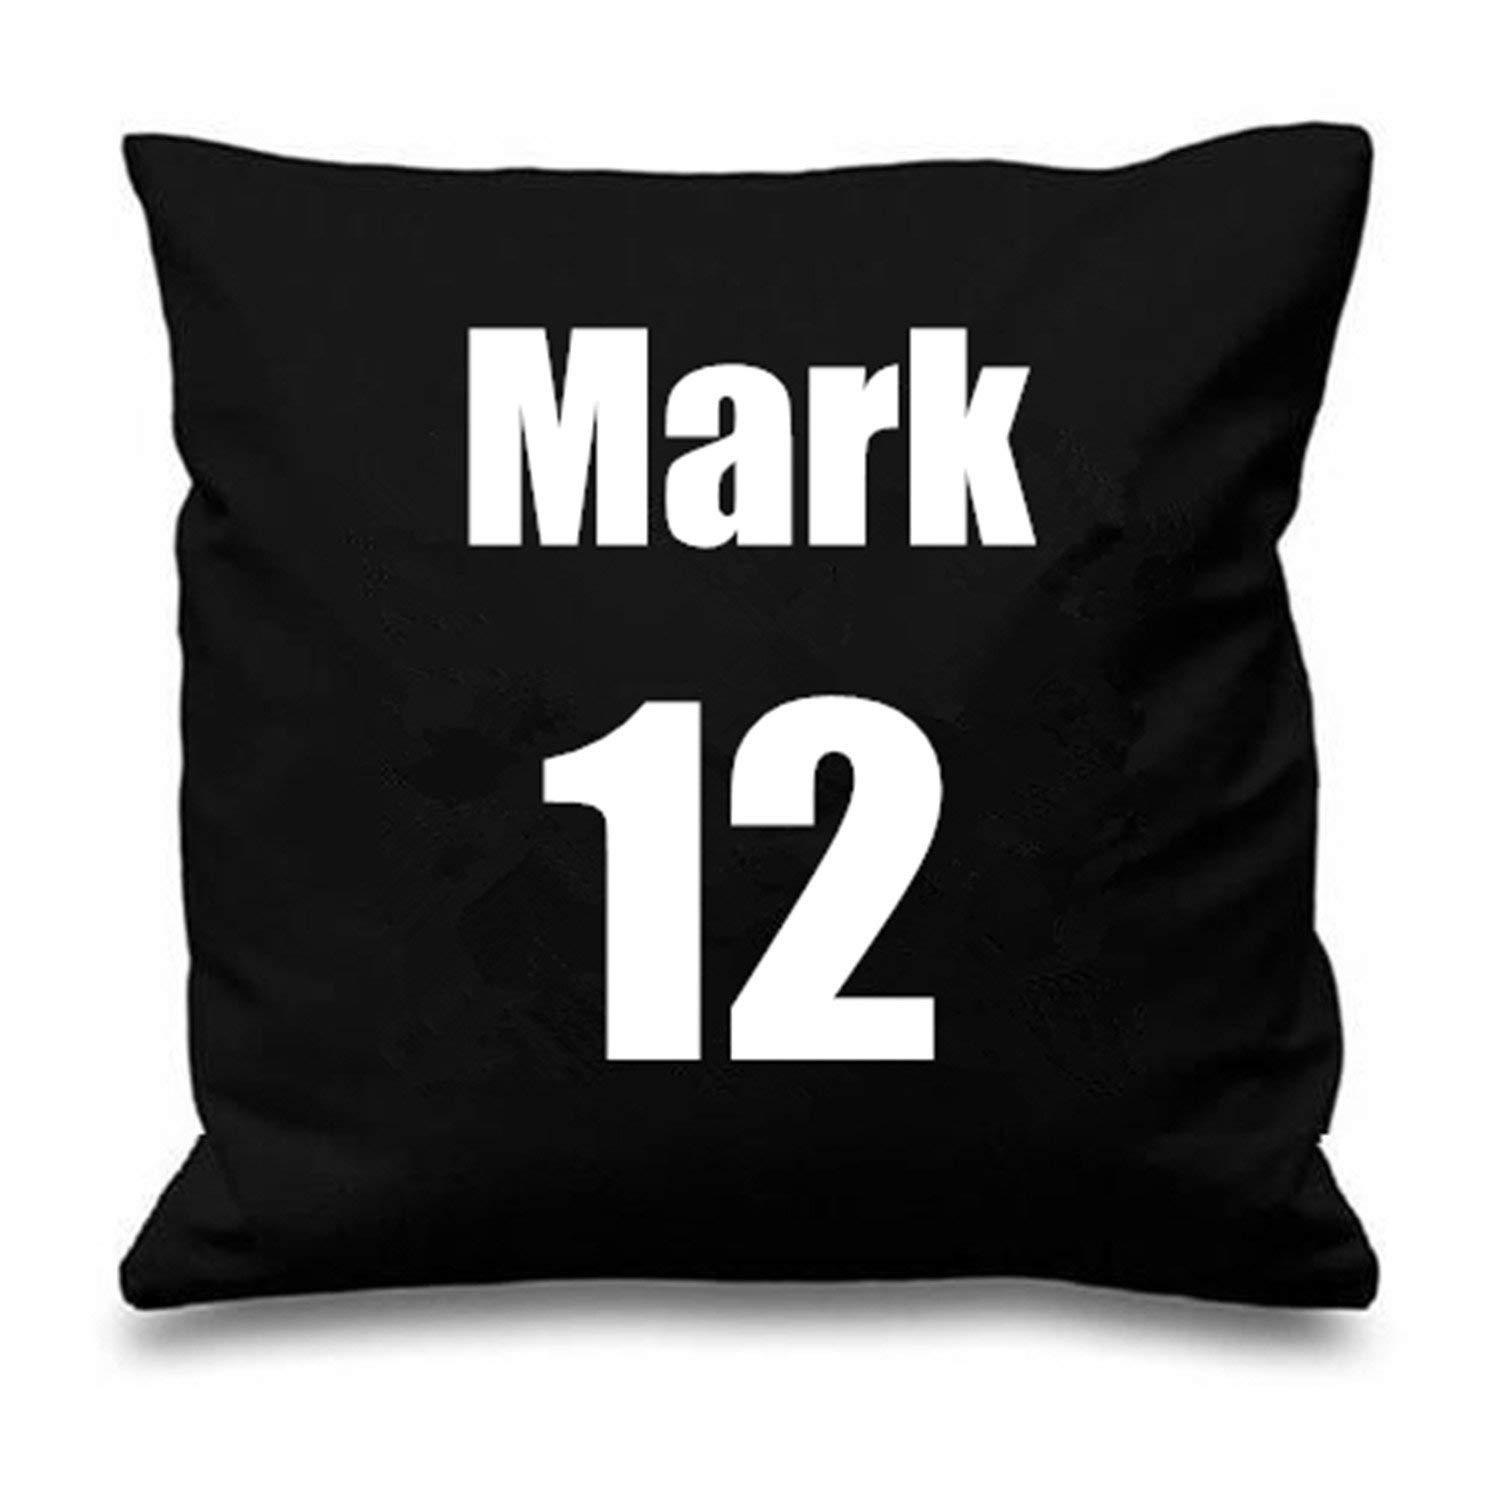 jingqi Personalized Gift Custom Name Football Shirt Design Cushion Cover Personalised Name Number Throw Pillow Case Boys Home Decor 18